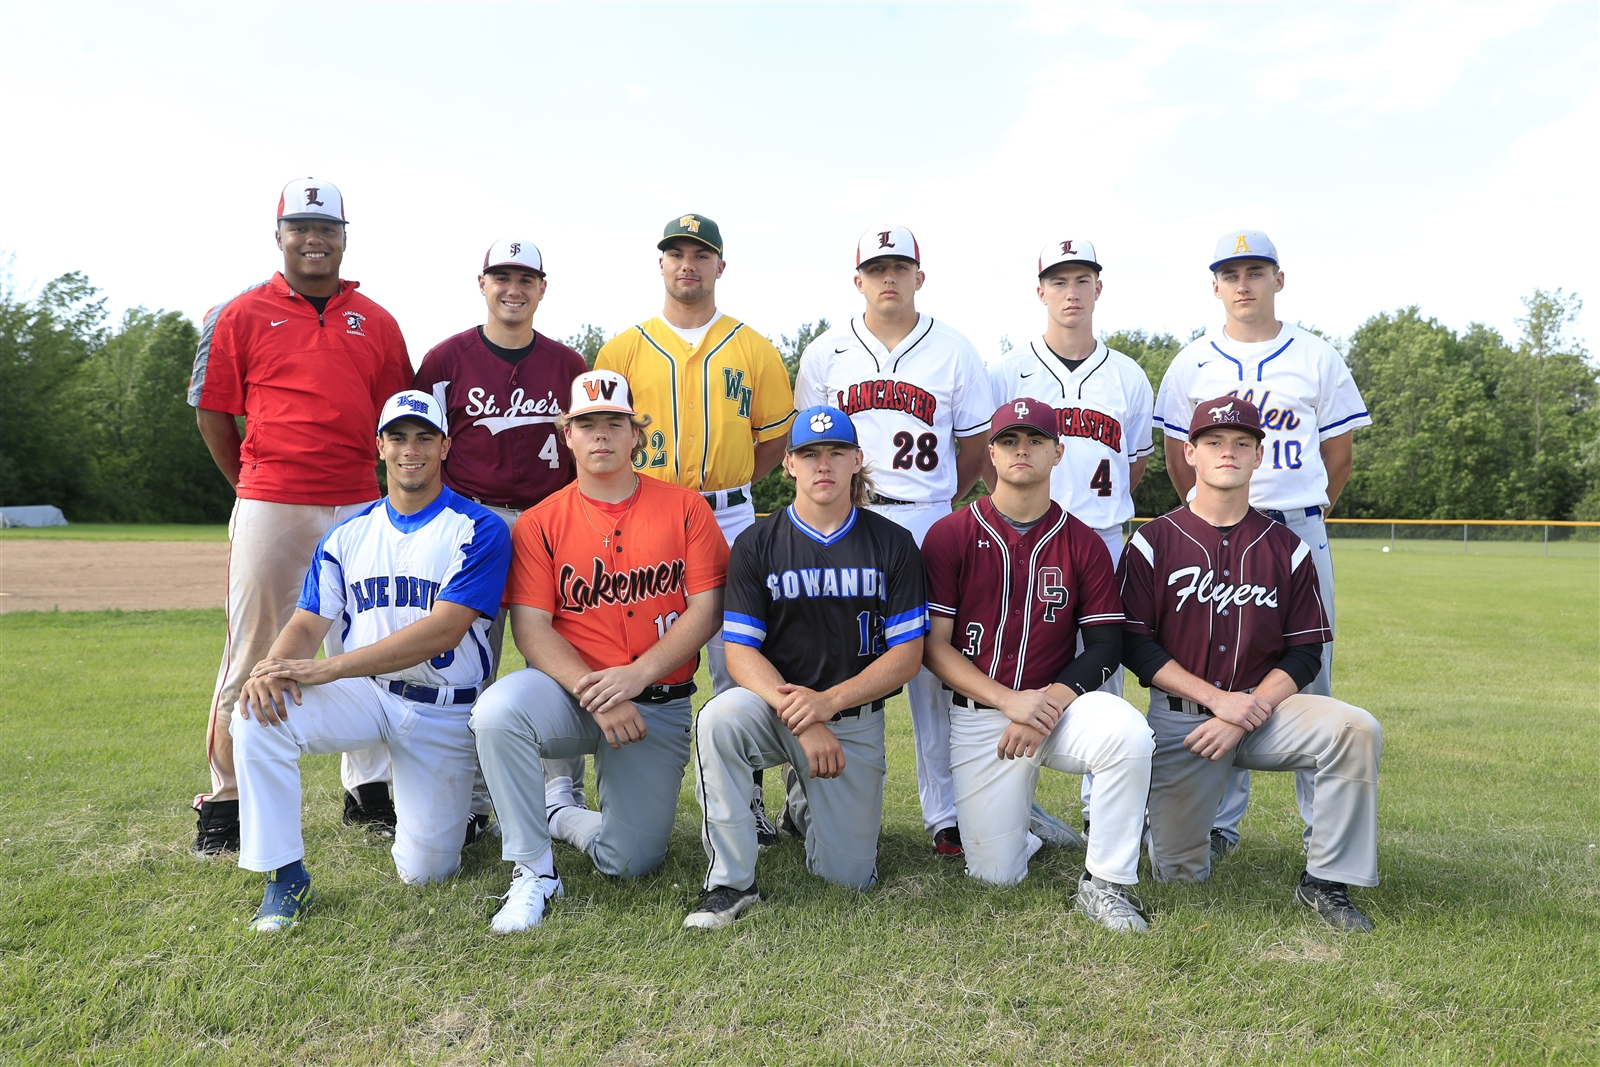 The All-Western New York baseball first team, front row from left: Benny Serrano (Kenmore West),John Bender (Wilson), Matt John Bender (Wilson), Cole Hollins (Orchard Park), Mike Flemming (Maryvale).  Back row from left: Leugim Castillo (Lancaster), Dennis Gagliardo (St. Joe's), Josh Surowiec (Williamsville North), Ben Damiani (Lancaster), Collin Reformat (Lancaster), Tom Bednarski (Alden). Not pictured: Garrett Boldt (Olean).